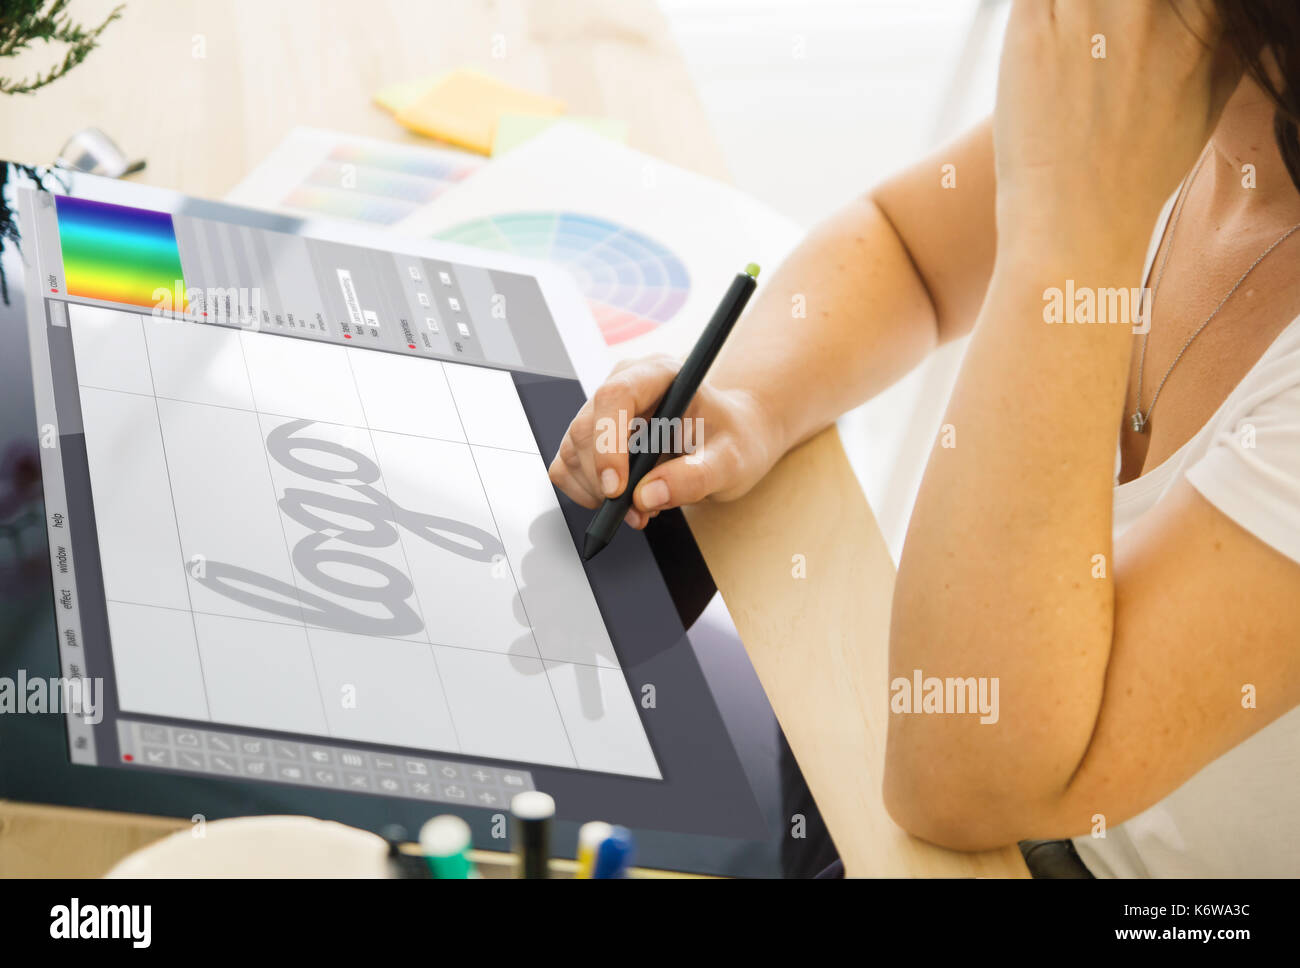 Designer drawing a logo on a tablet. All screen graphics are made up. - Stock Image